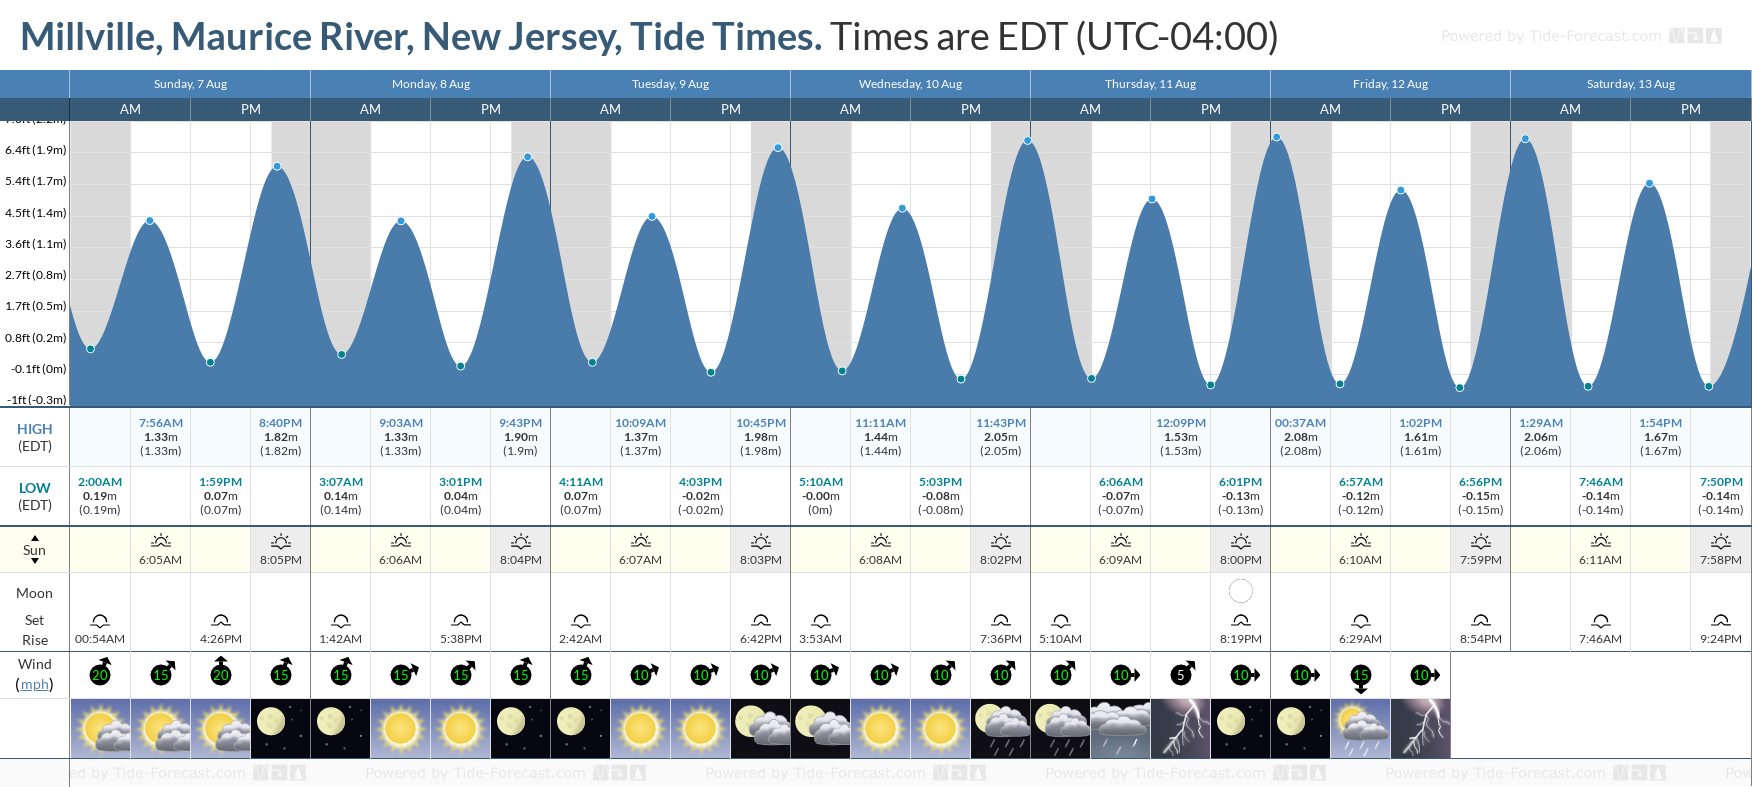 Millville, Maurice River, New Jersey Tide Chart including high and low tide tide times for the next 7 days